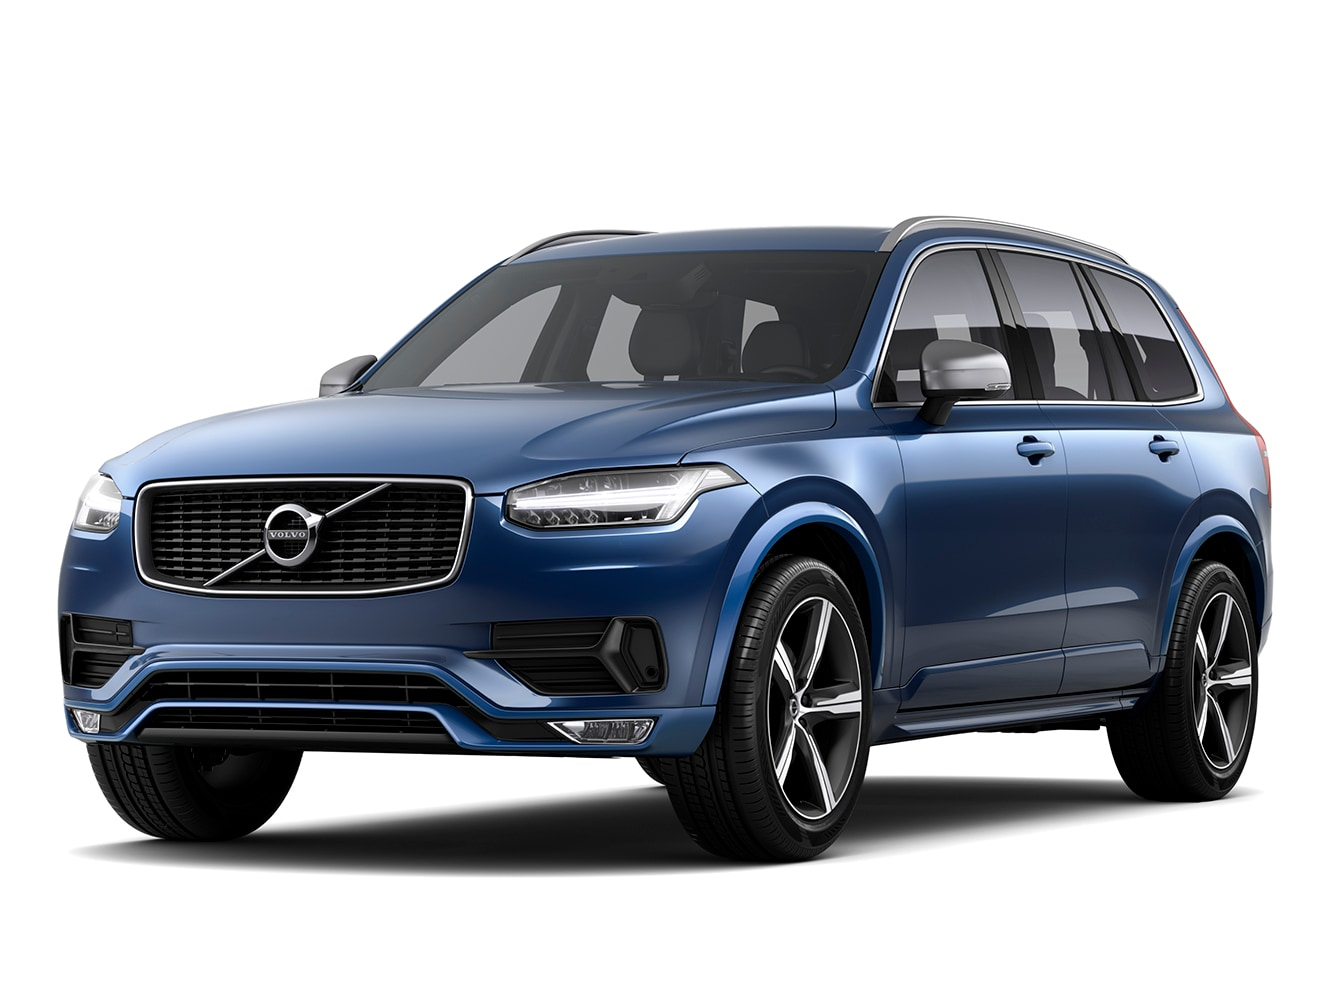 The Volvo XC90 R-Design trim